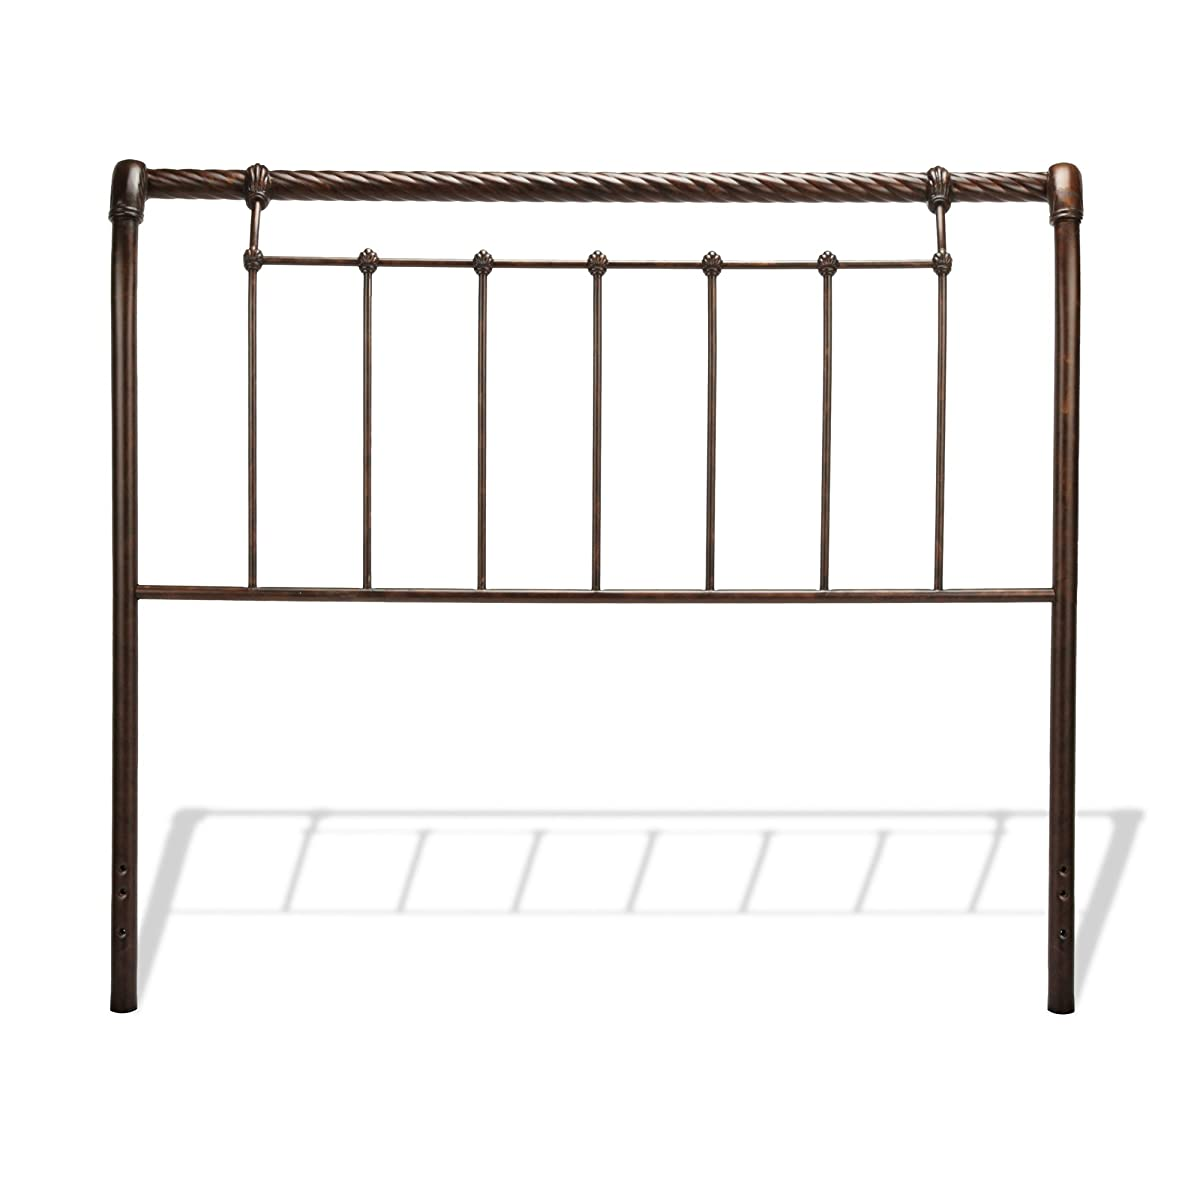 Fashion Bed Group Legion Complete Metal Bed and Steel Support Frame with Sleigh-Styled Panels and Twisted Rope Top Rails, Ancient Gold Finish, Queen